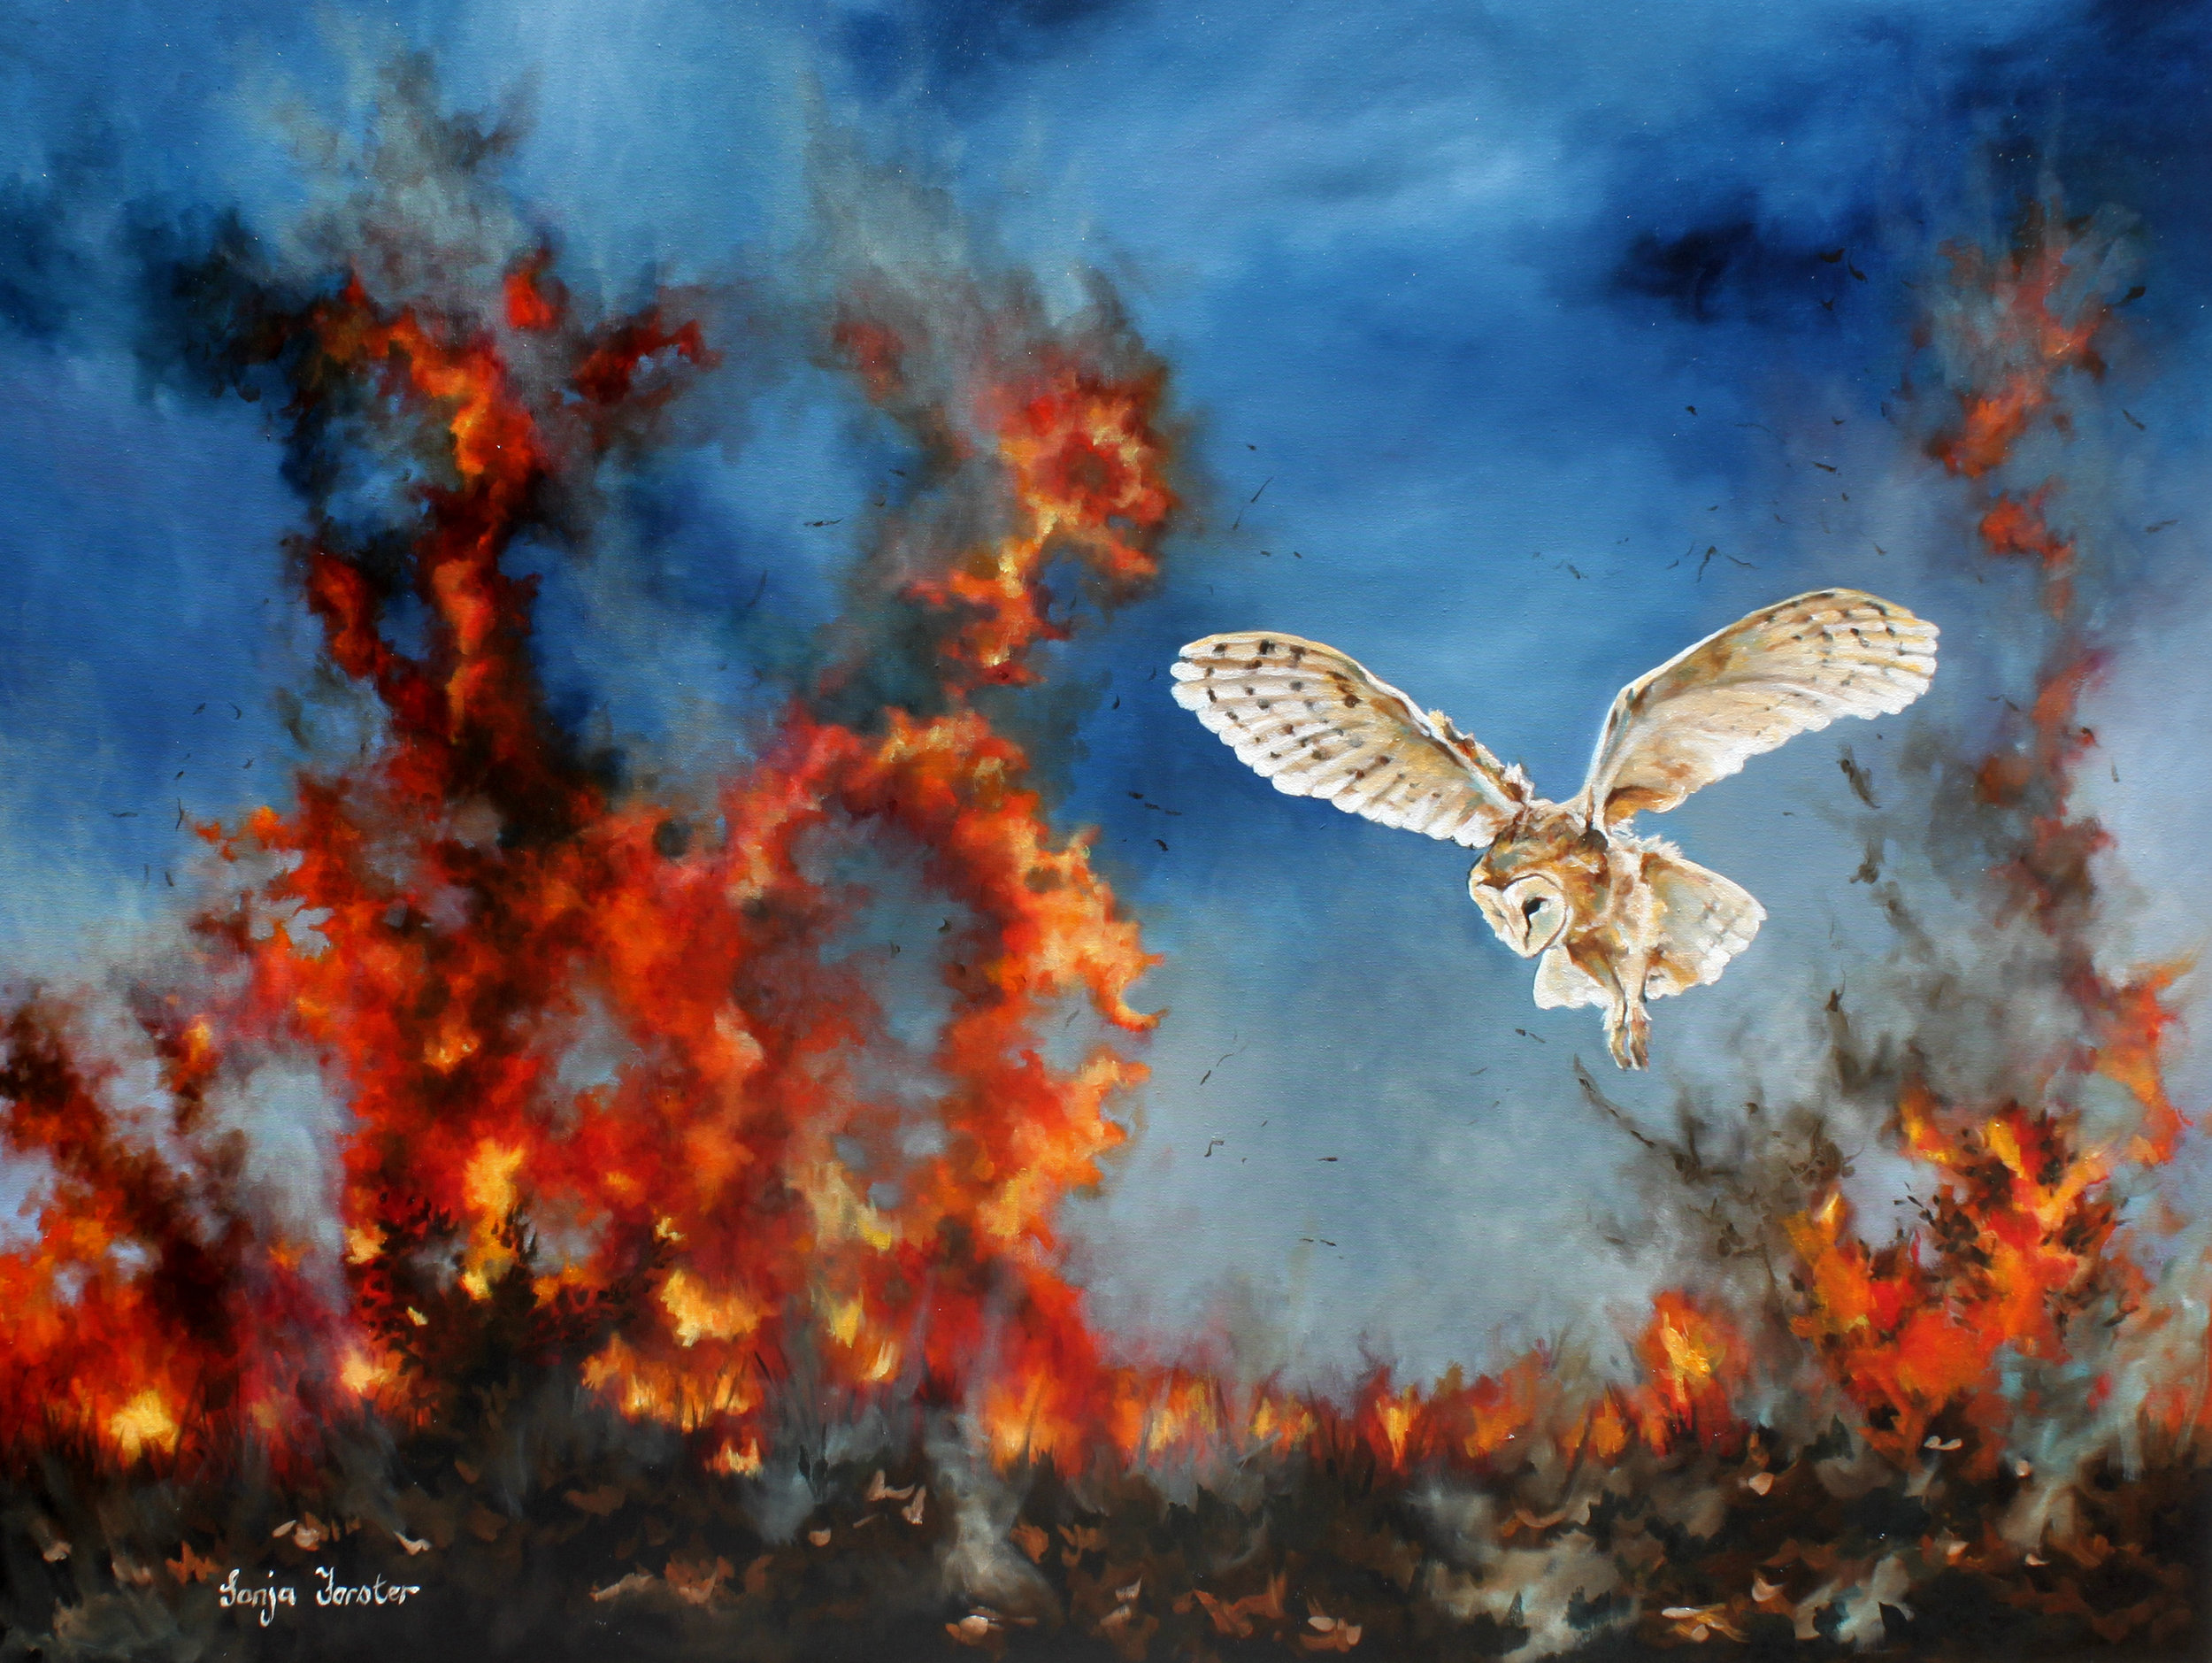 Sonja Forster Art - Devastation and Survival.jpg